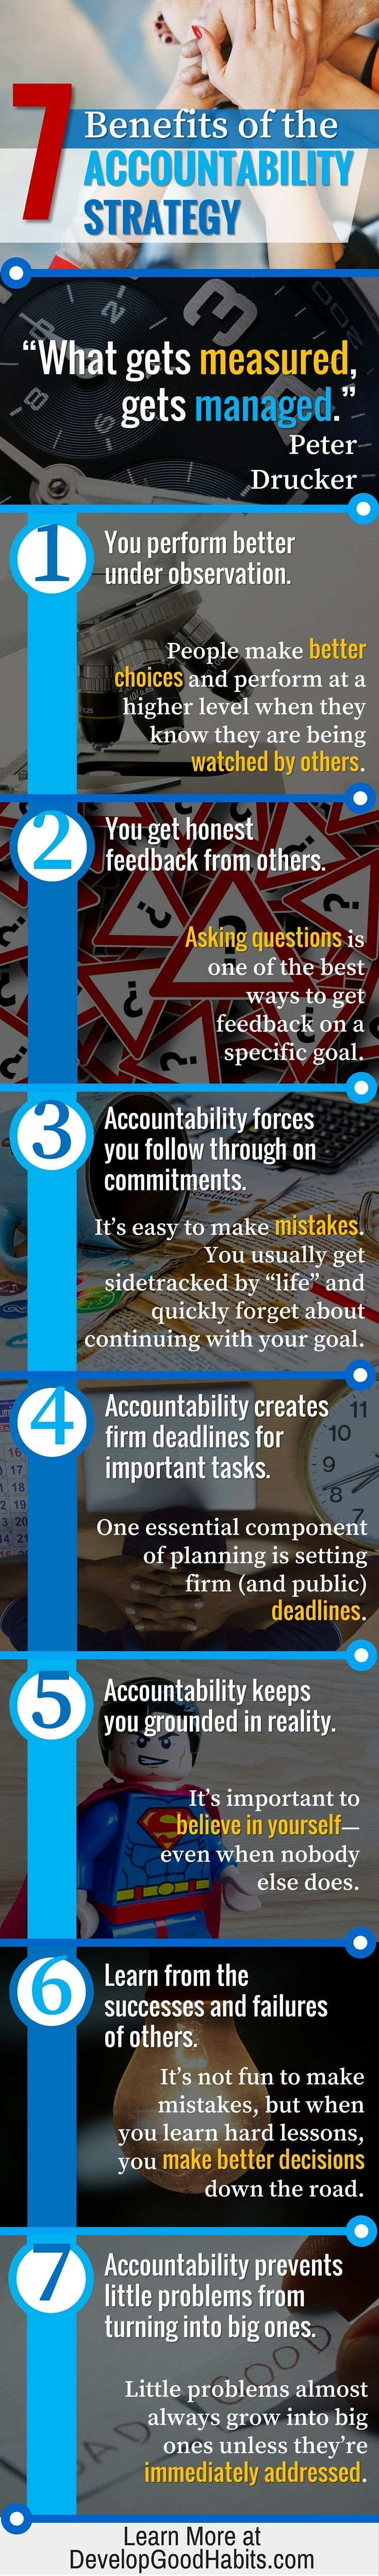 How accountability can help you be more productive, create better work, get more done and achieve the success you desire.  This pin created from section of accountability manifesto.